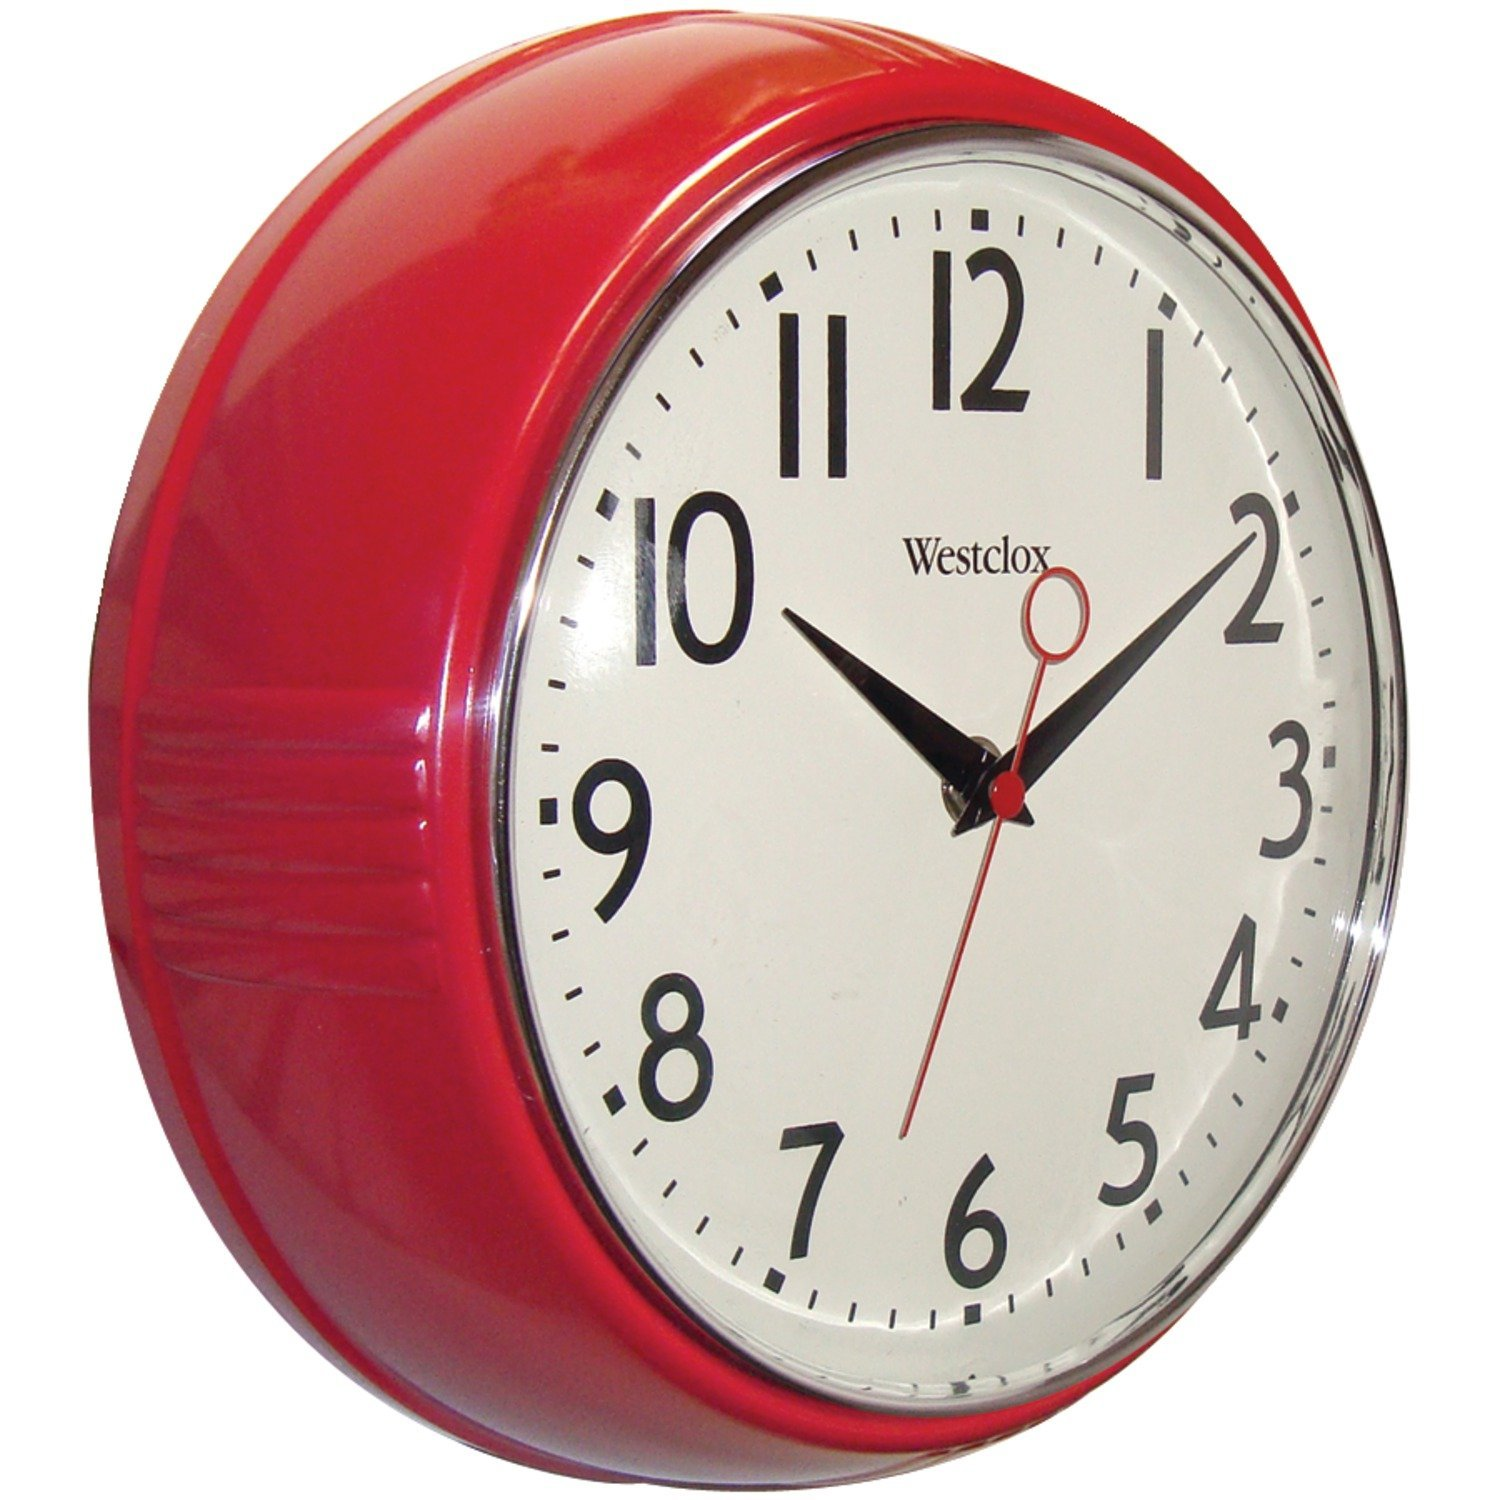 wall clocks amazon.com: westclox 32042r retro 1950 kitchen wall clock, 9.5-inch, red:  kitchen u0026 MNQTGYF